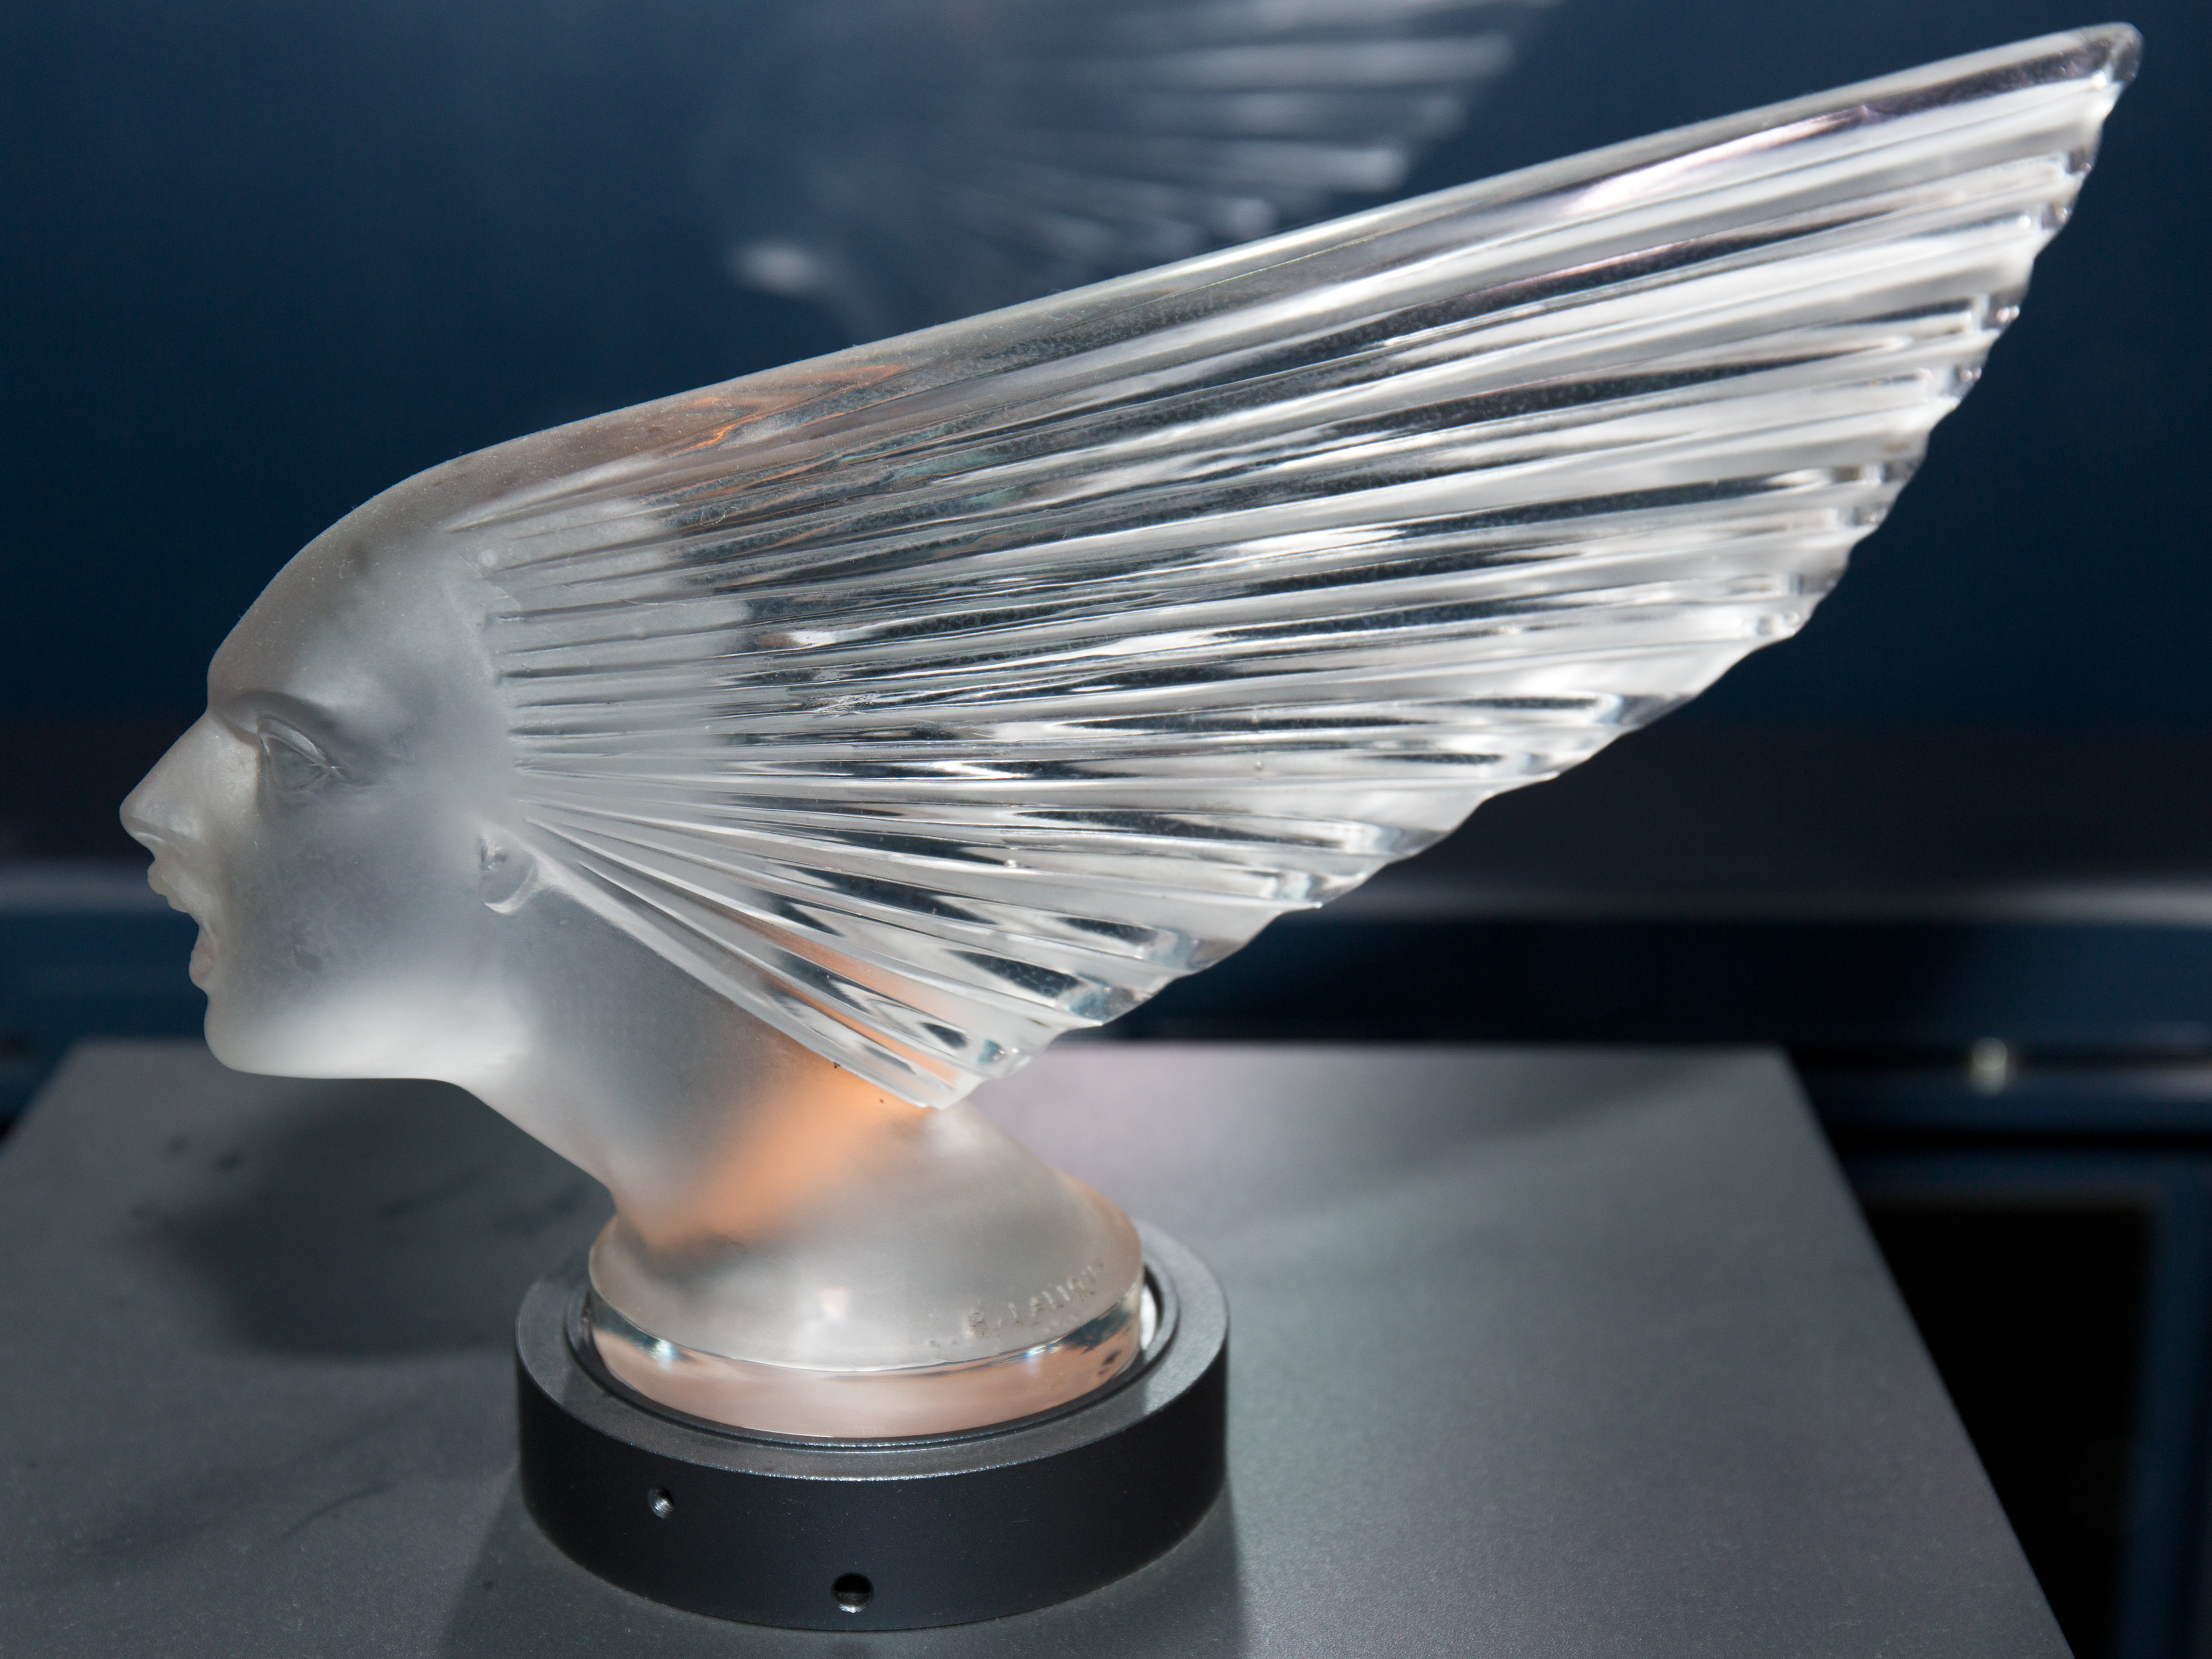 Victoire_2_by_Rene_Lalique_Toyota_Automobile_Museum.jpg